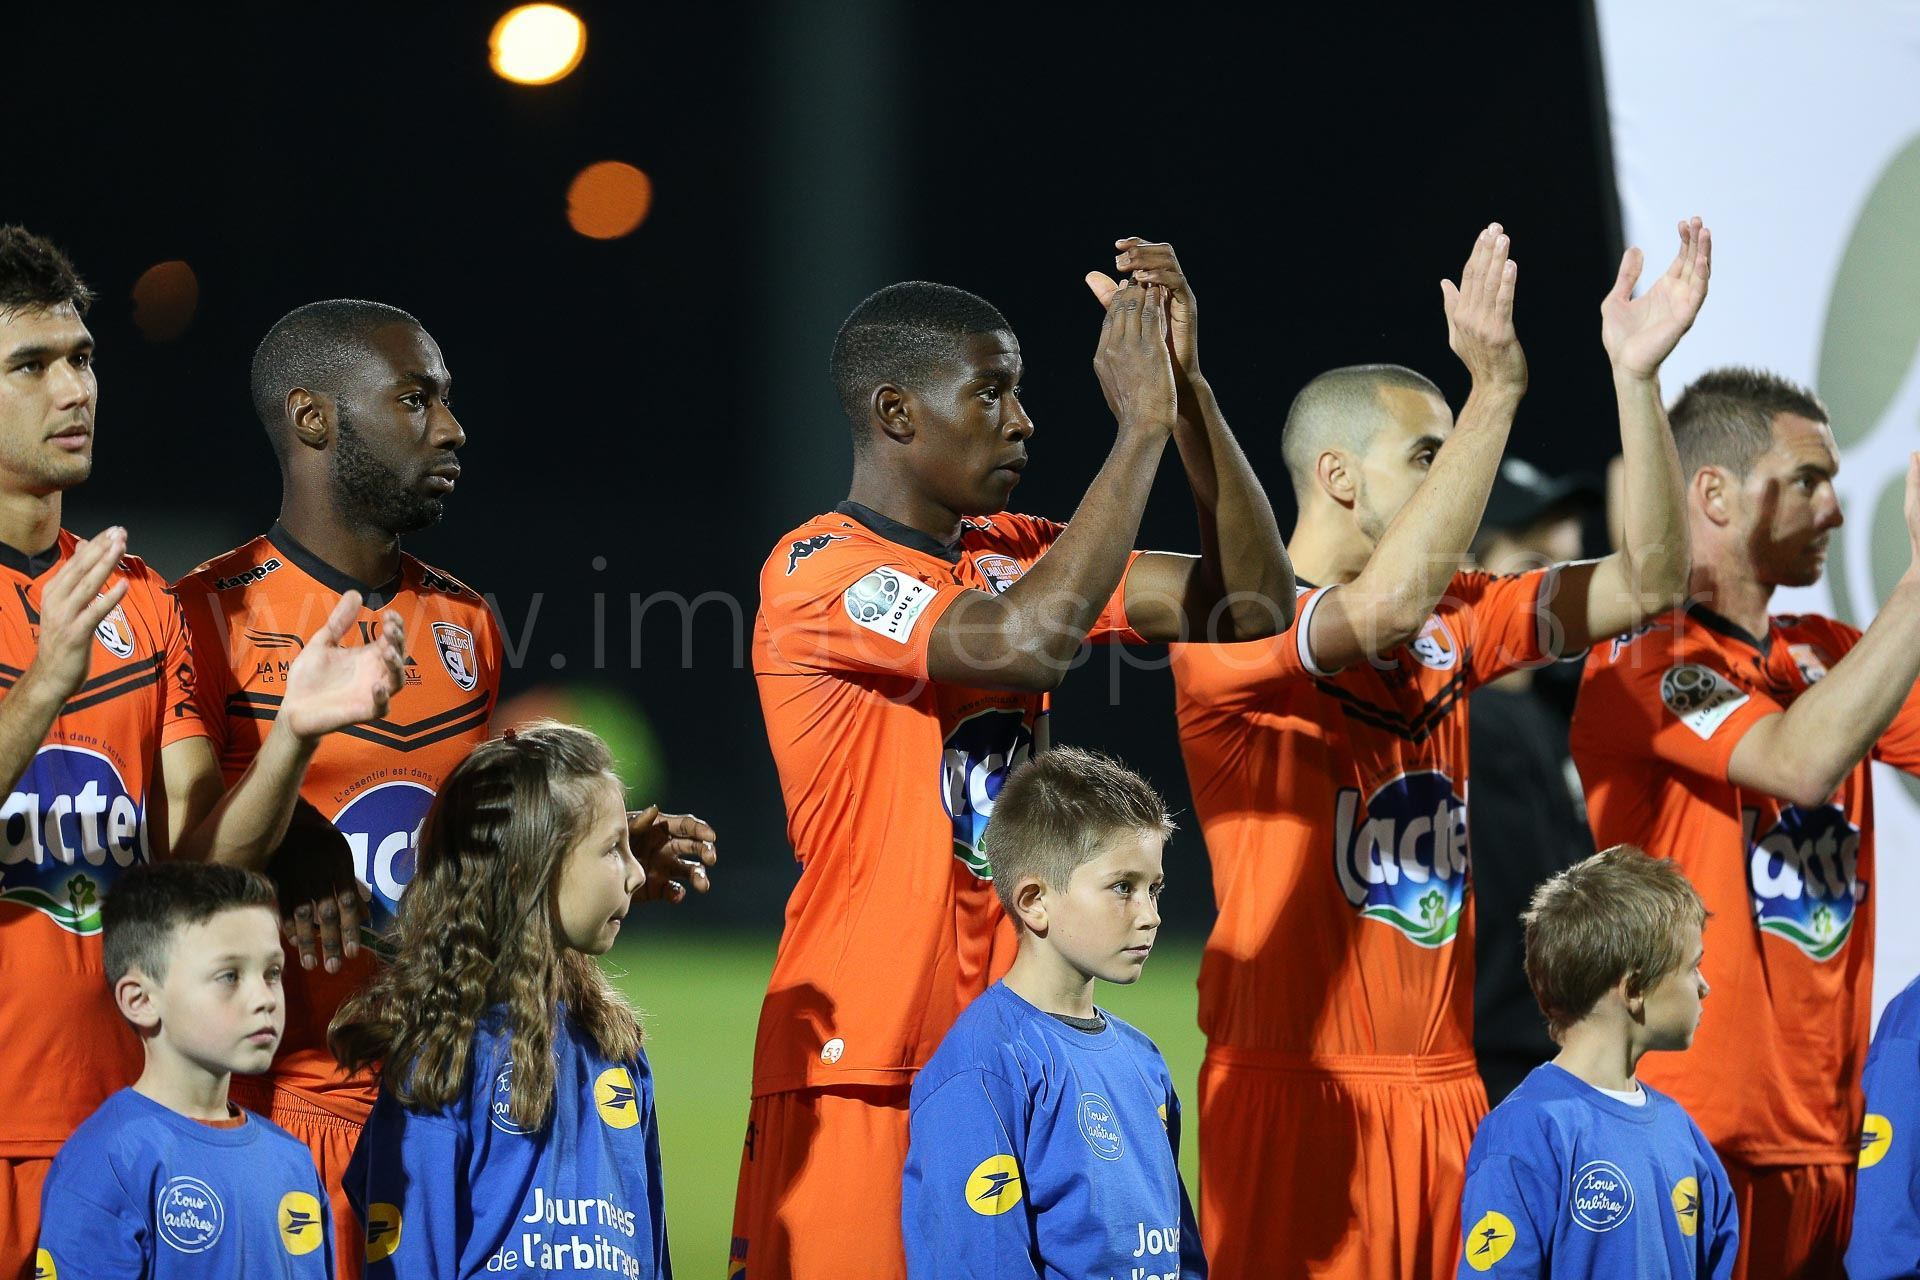 NG-Ligue2-1516-J12-Laval-Tours_39